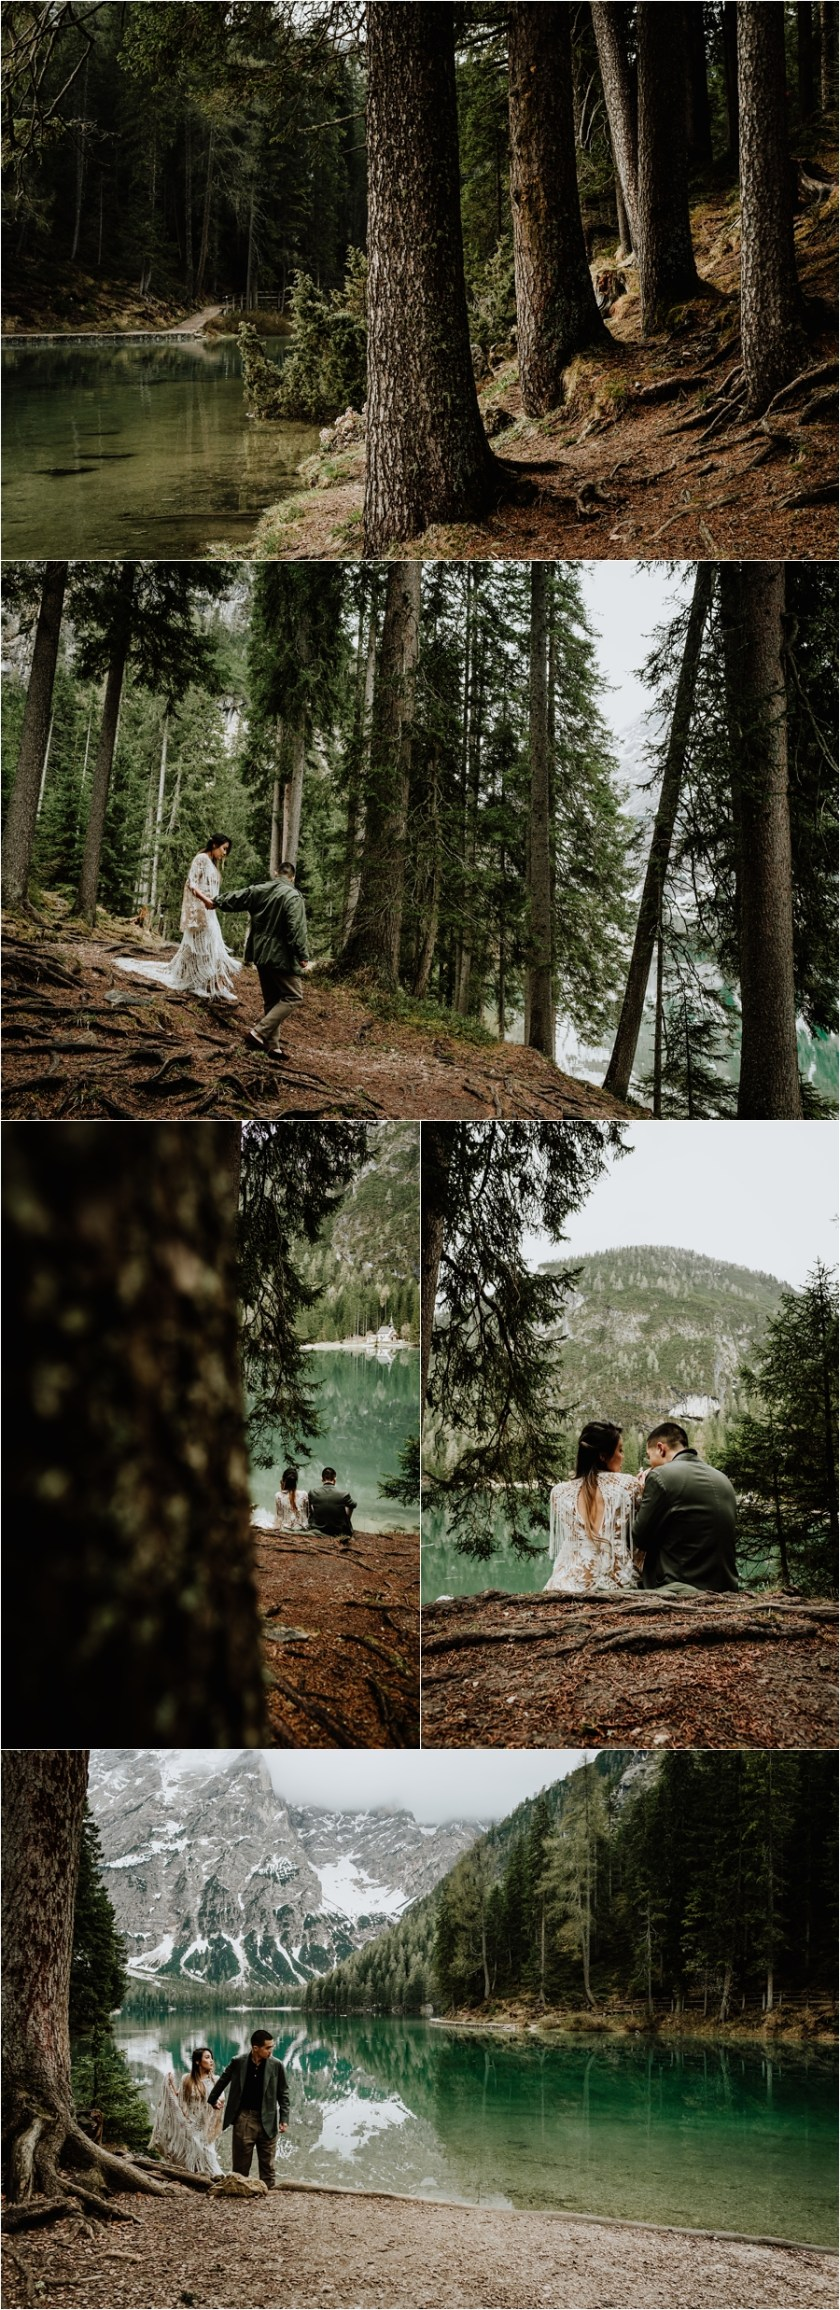 Boho pre-wedding shoot at Lake Braies in the Dolomites in Italy by Wild Connections Photography